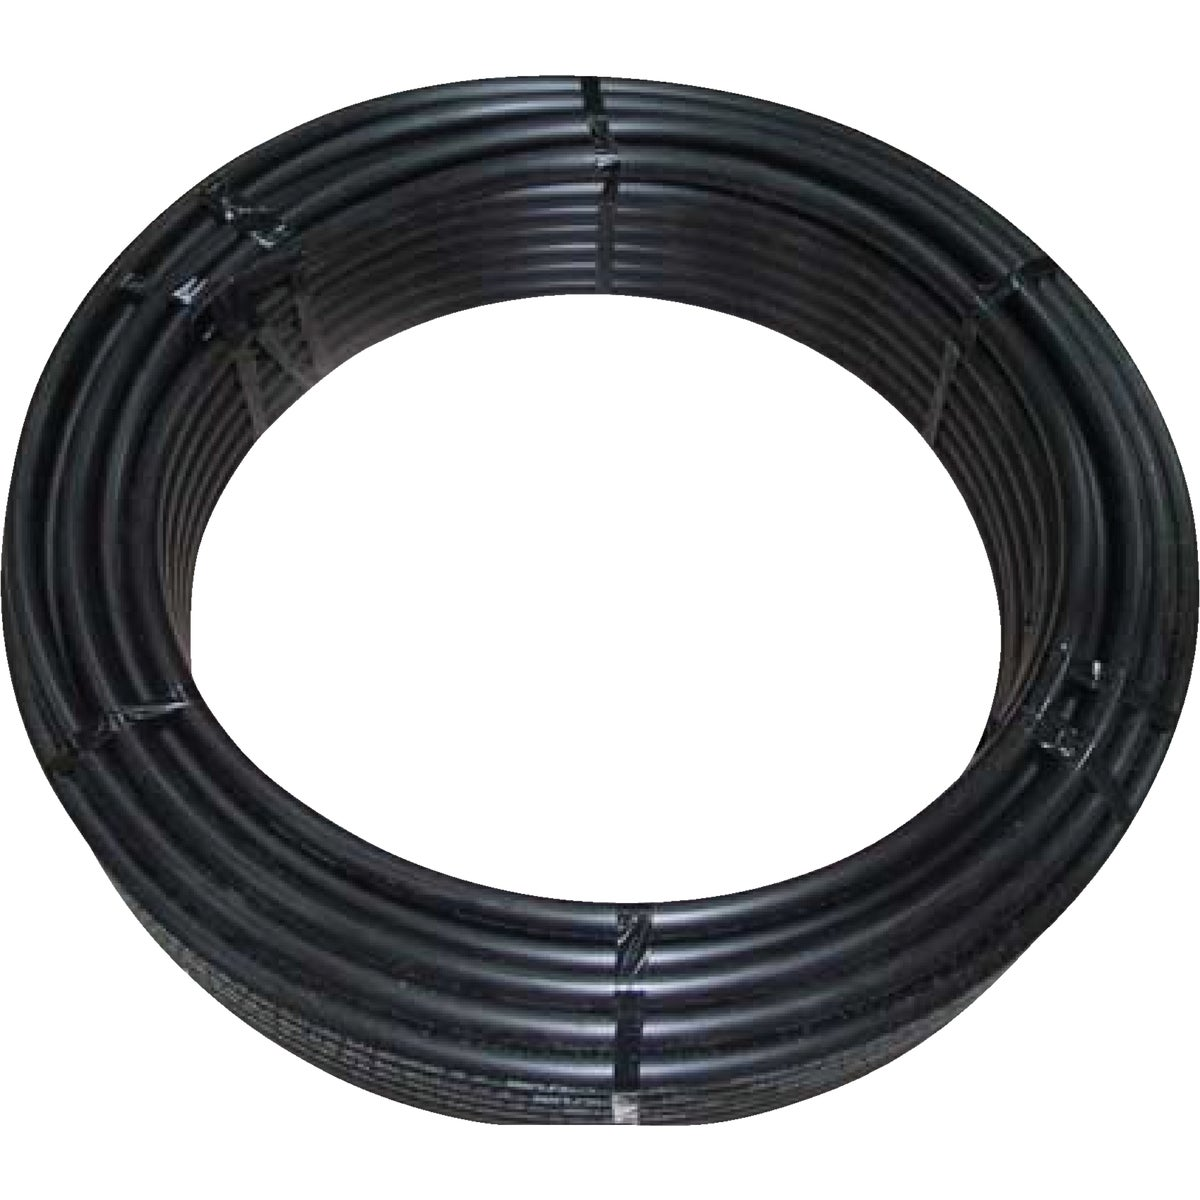 "3/4""X500' CTS PIPE - 18520 by Cresline Plastic Co"